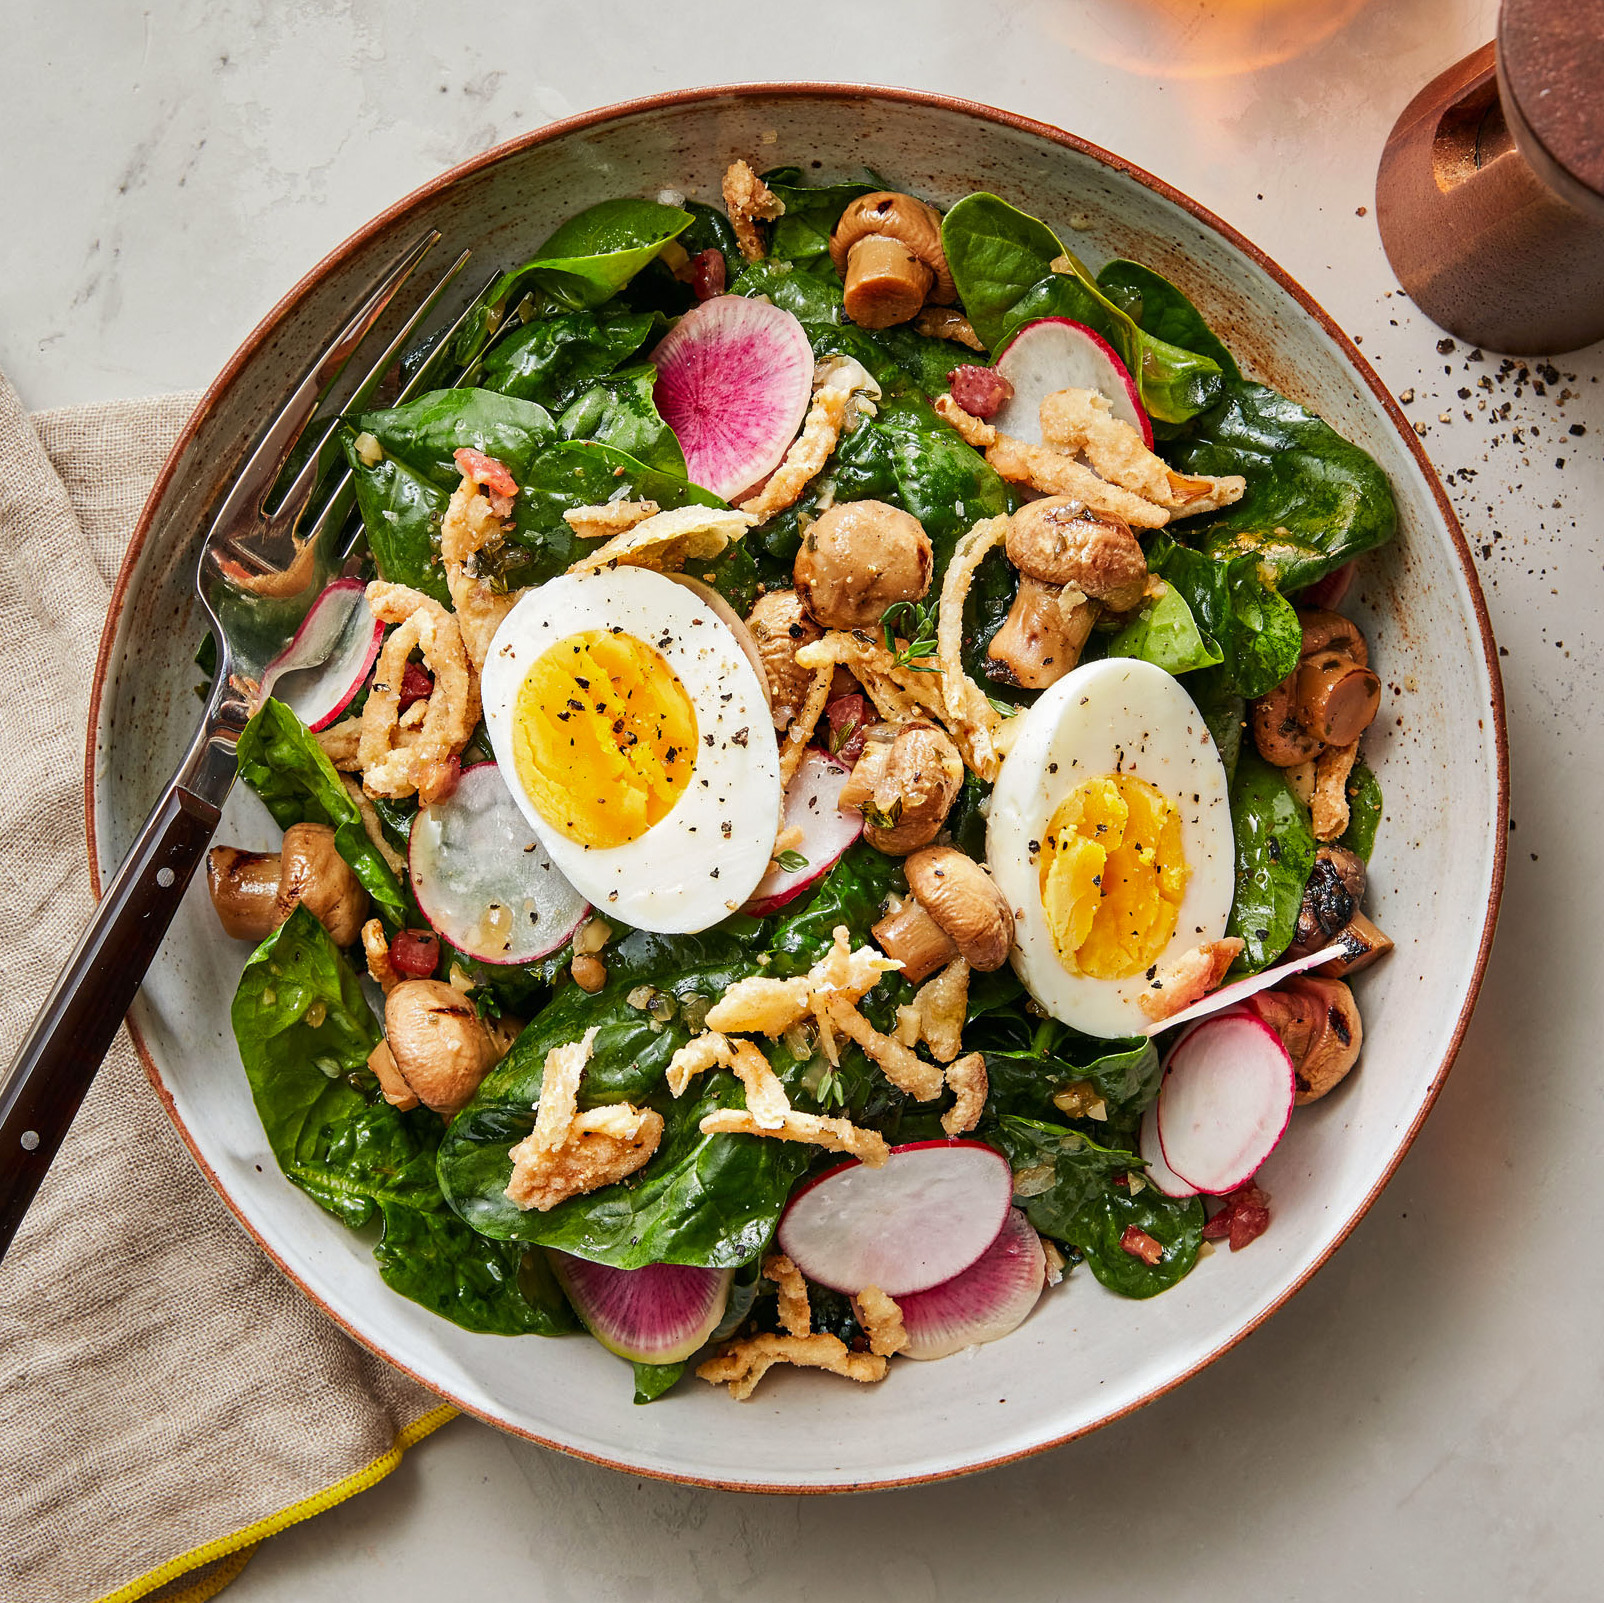 Spinach Salad with Warm Bacon-Maple Dressing